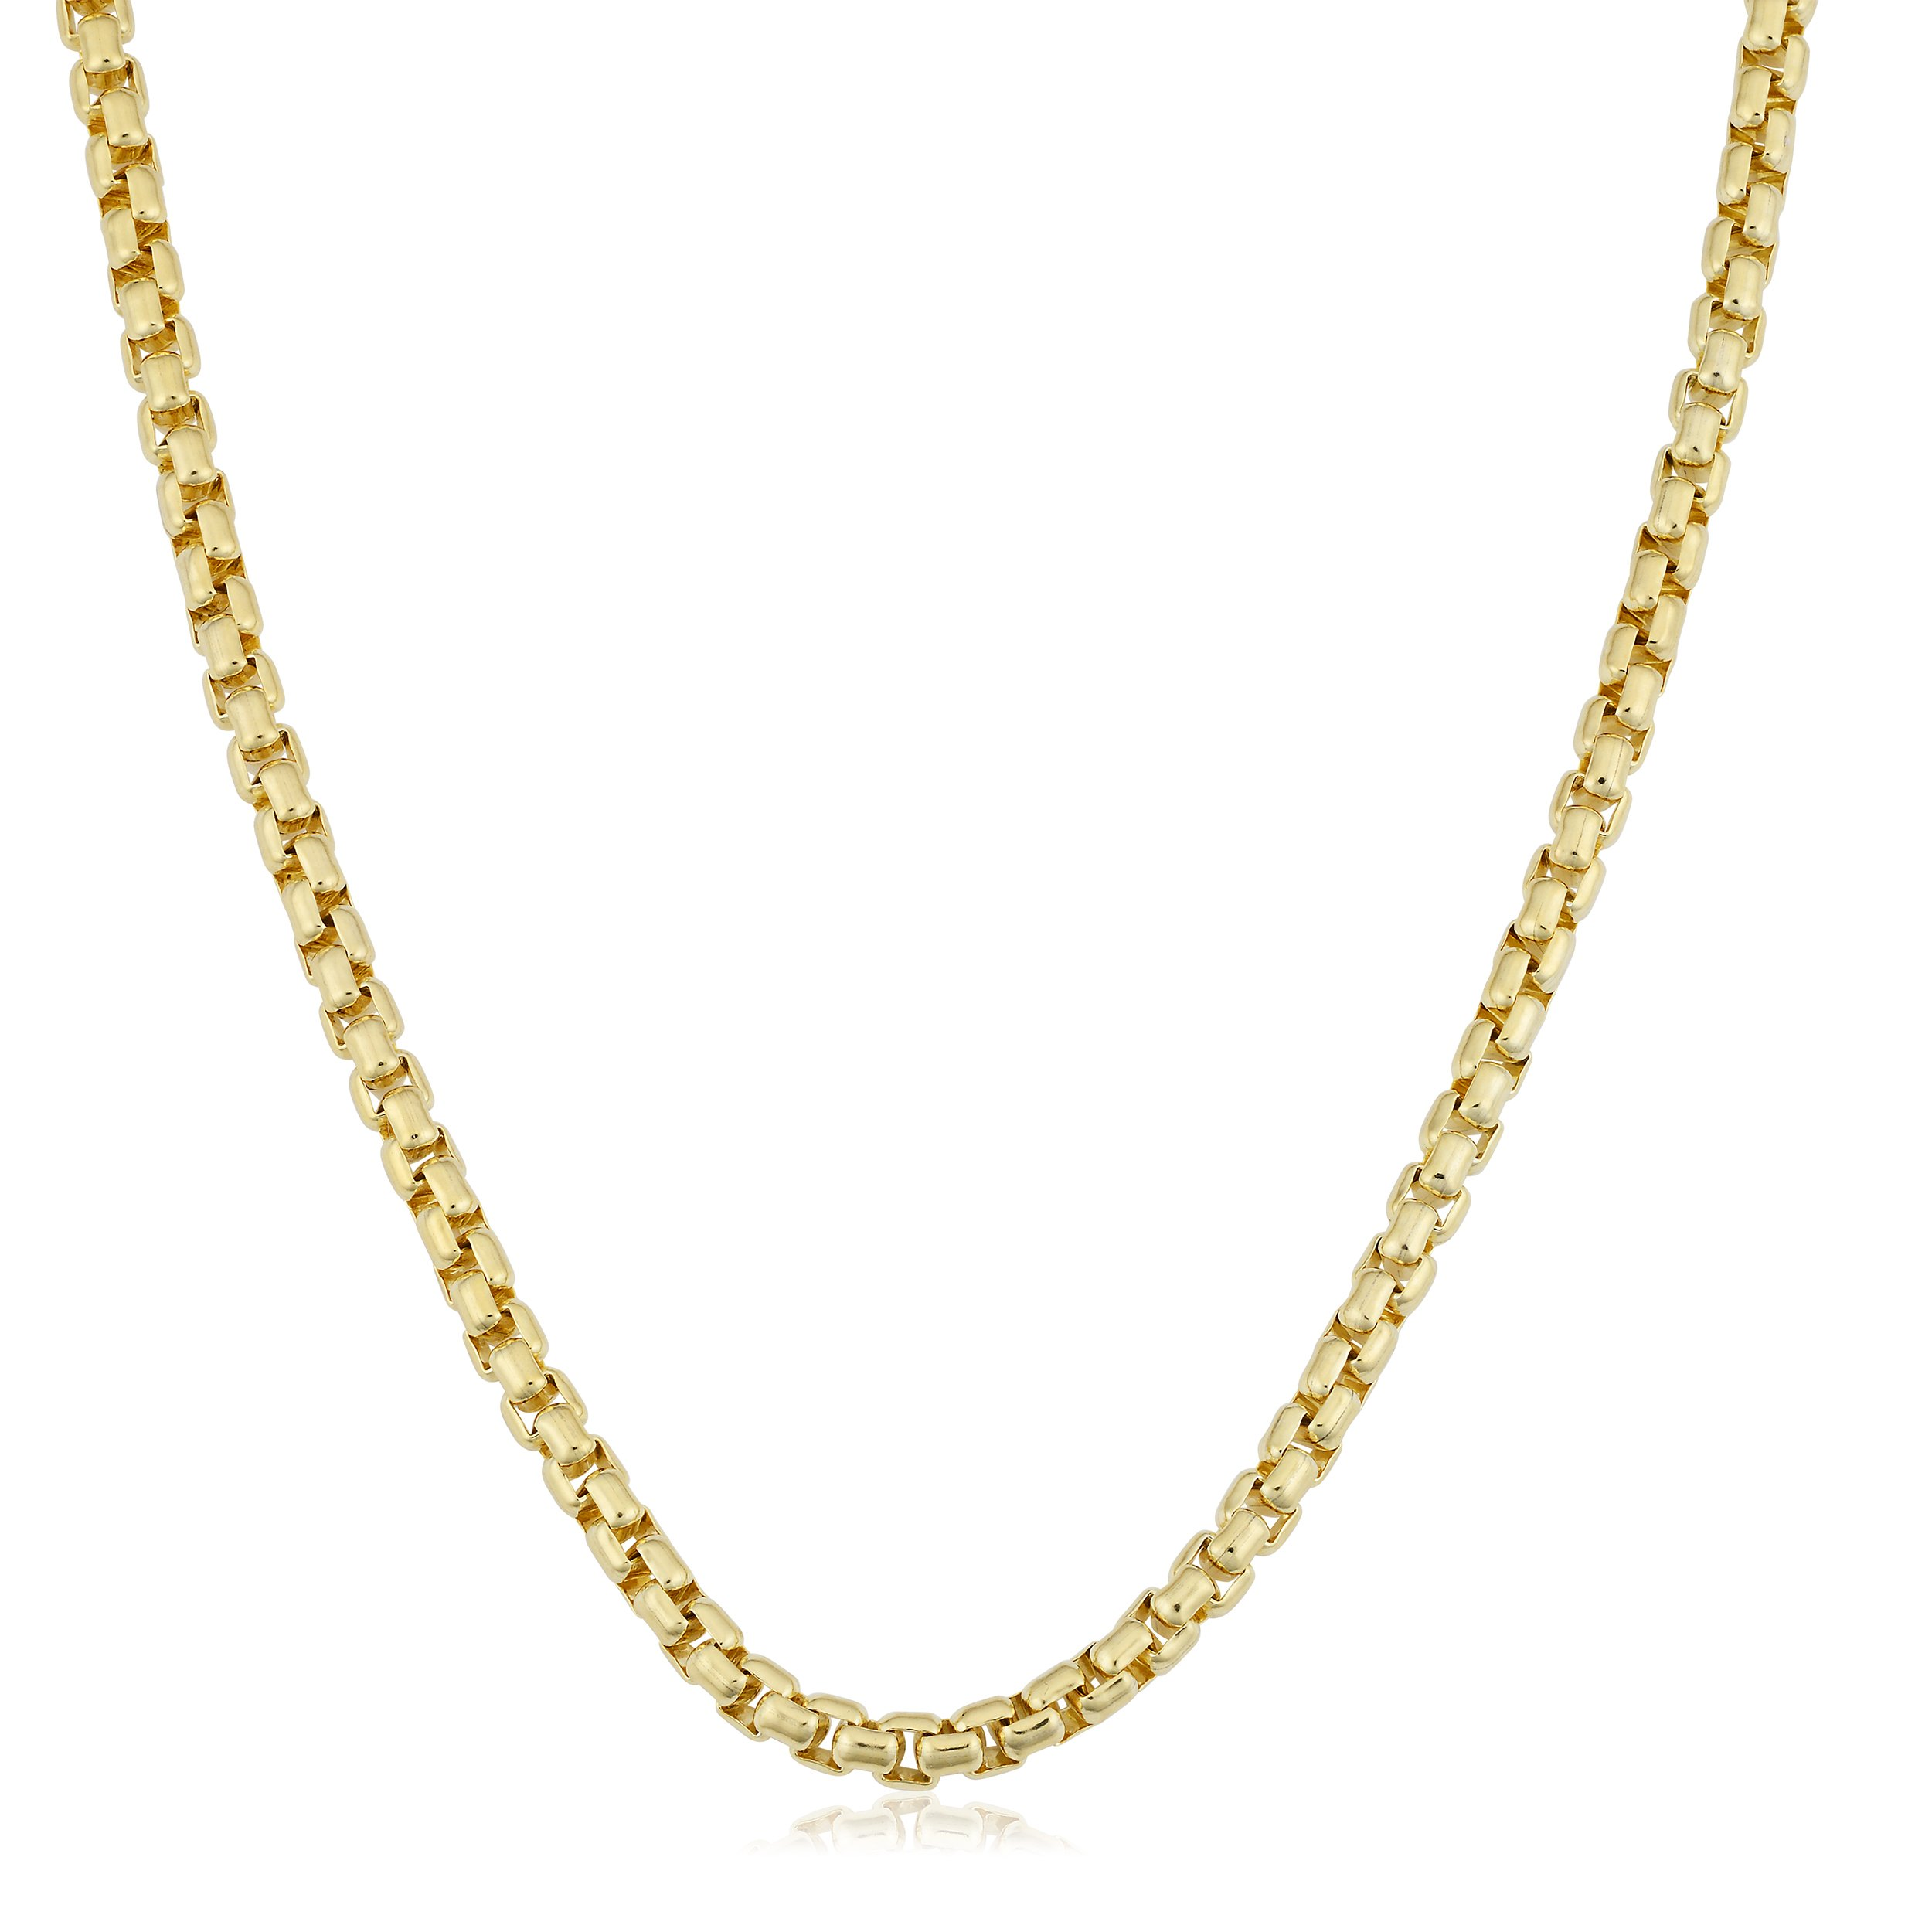 Kooljewelry 14k Yellow Gold Filled Unisex 3.5mm Round Box Link Chain Necklace (18 inch)